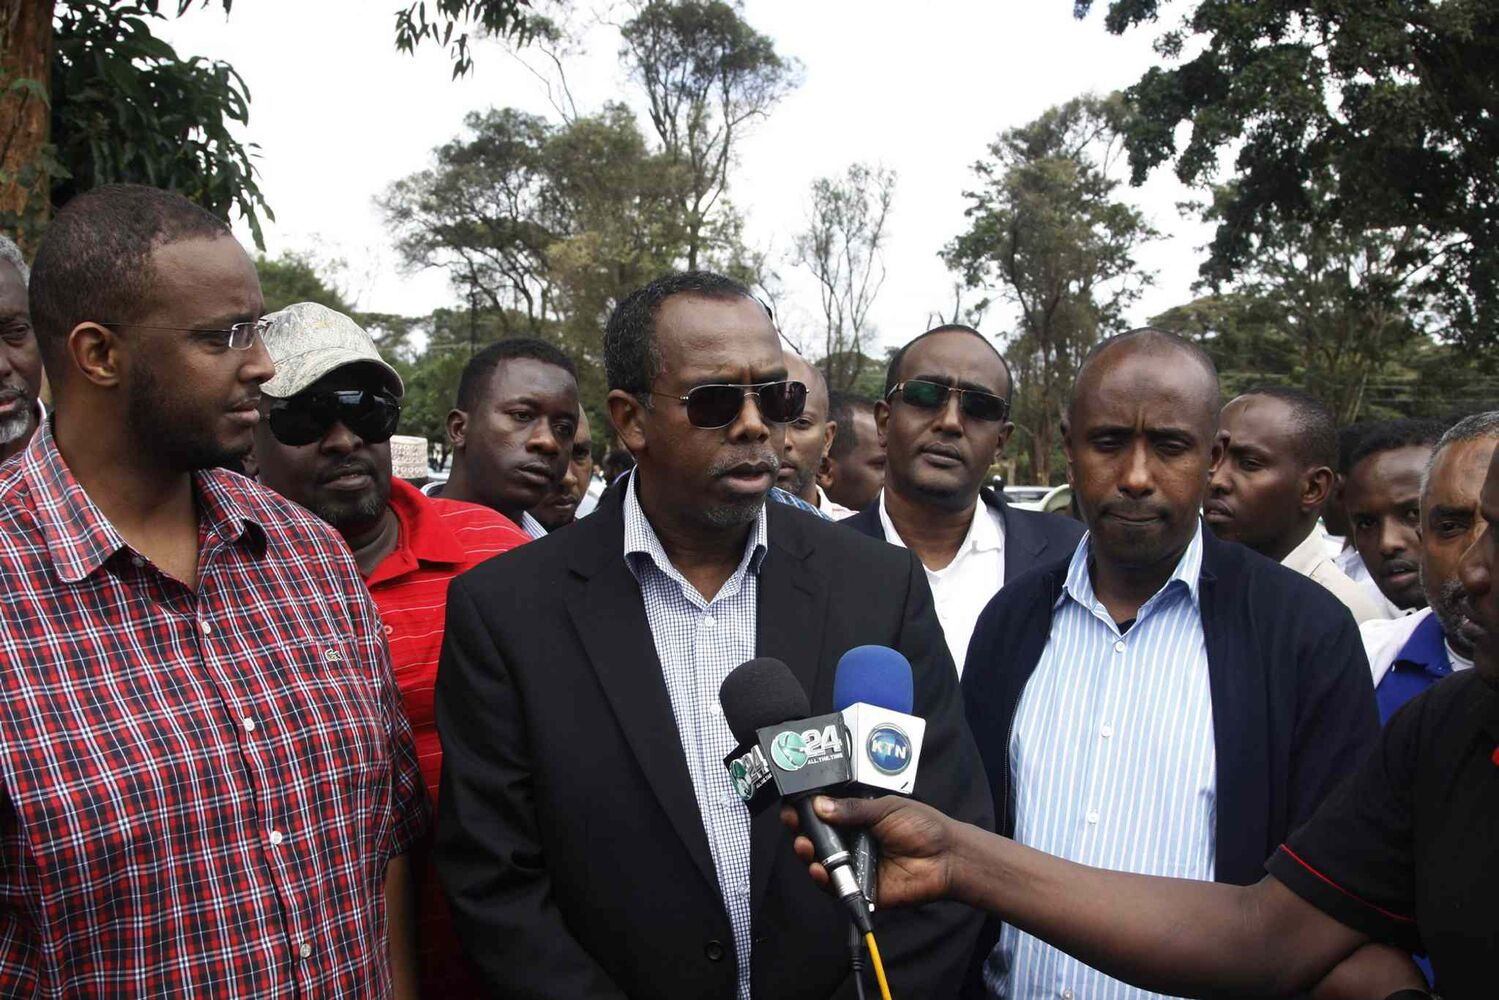 Somalia's ambassador to Kenya, Mohamed Ali Nur, centre,speaks to journalists during the burial of a 41-year-old Somali man and an 18-year-old Asian woman in Nairobi, Kenya Sunday. Both of them were killed during Saturday's mall shooting in Nairobi. (Khalil Senosi / The Associated Press)